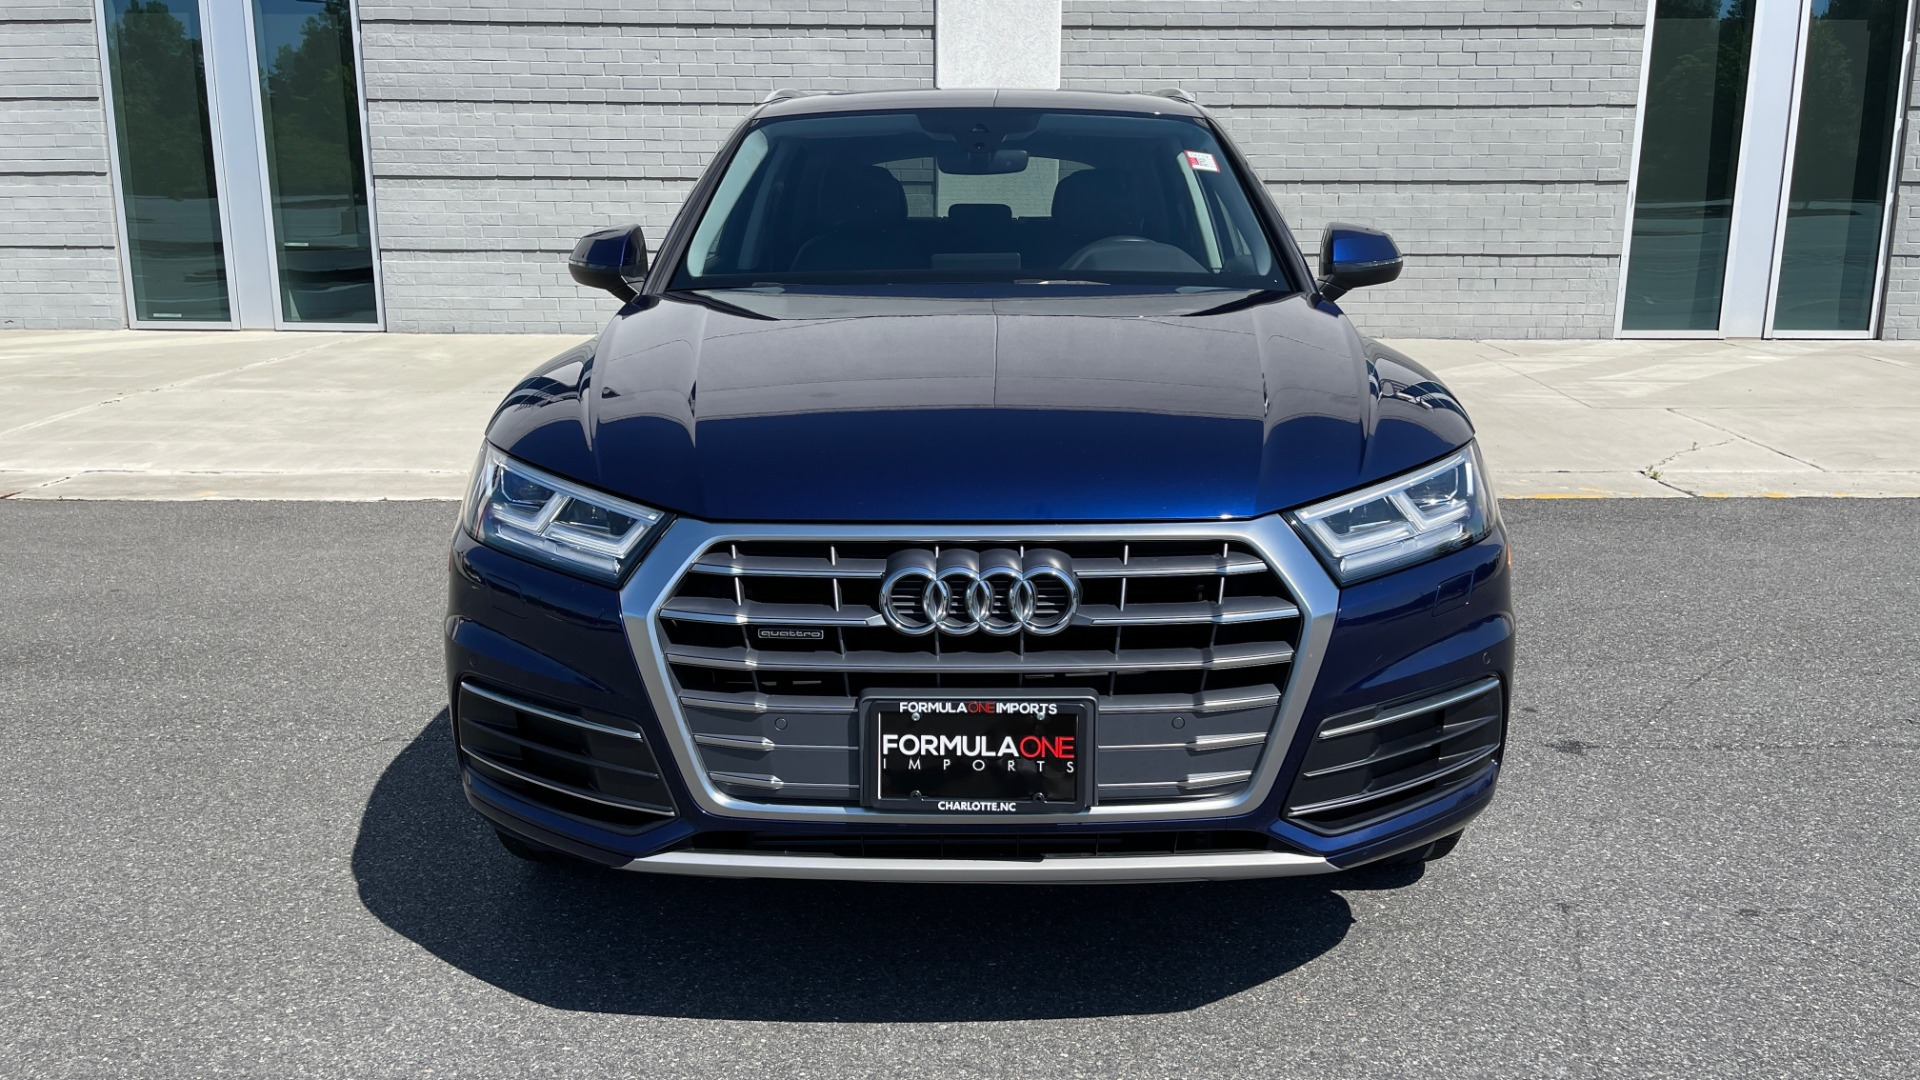 Used 2018 Audi Q5 PREMIUM PLUS / NAV / PANO-ROOF / PARK SYSTEM / REARVIEW for sale $33,695 at Formula Imports in Charlotte NC 28227 10